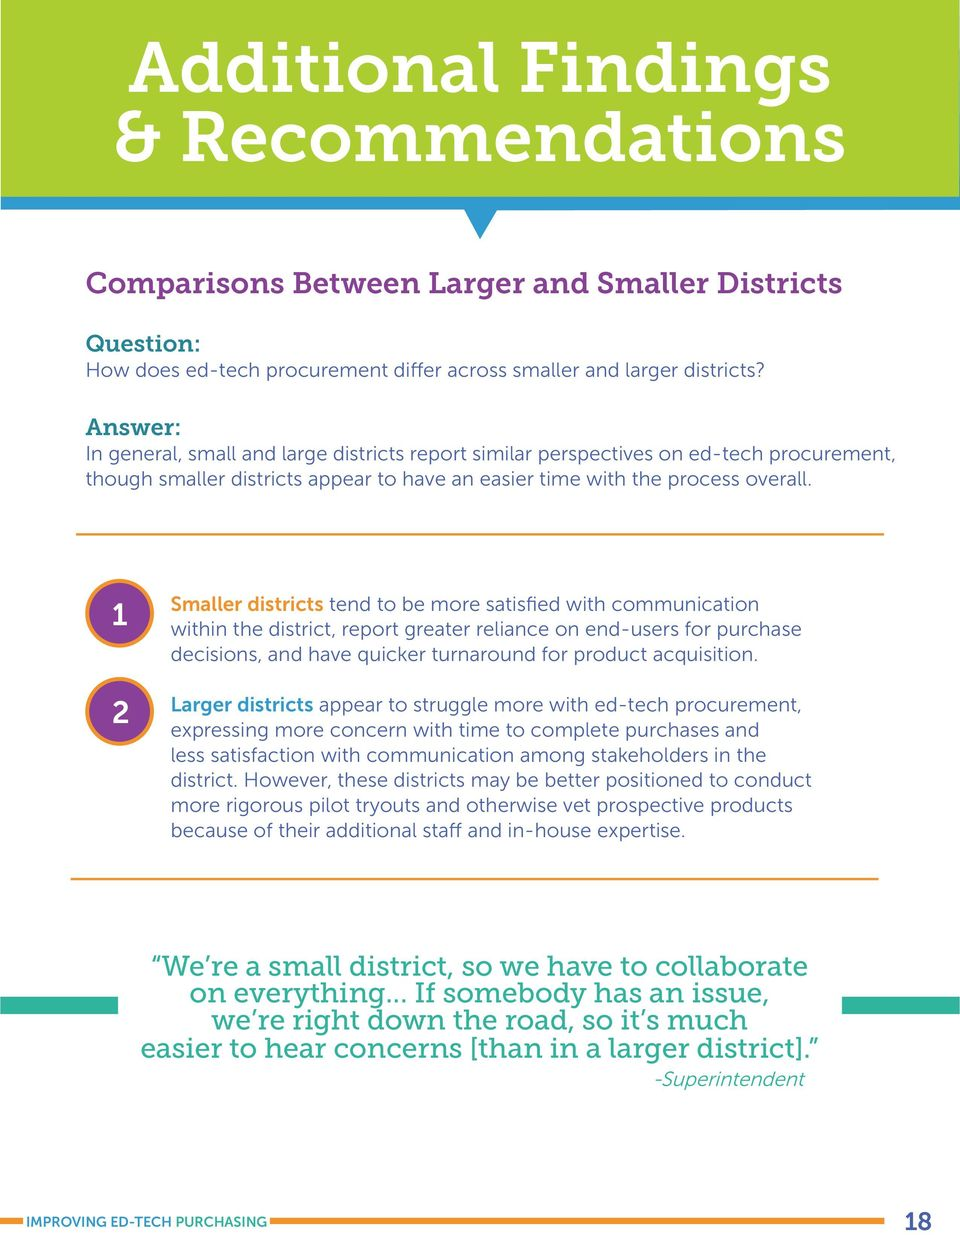 1 2 Smaller districts tend to be more satisfied with communication within the district, report greater reliance on end-users for purchase decisions, and have quicker turnaround for product